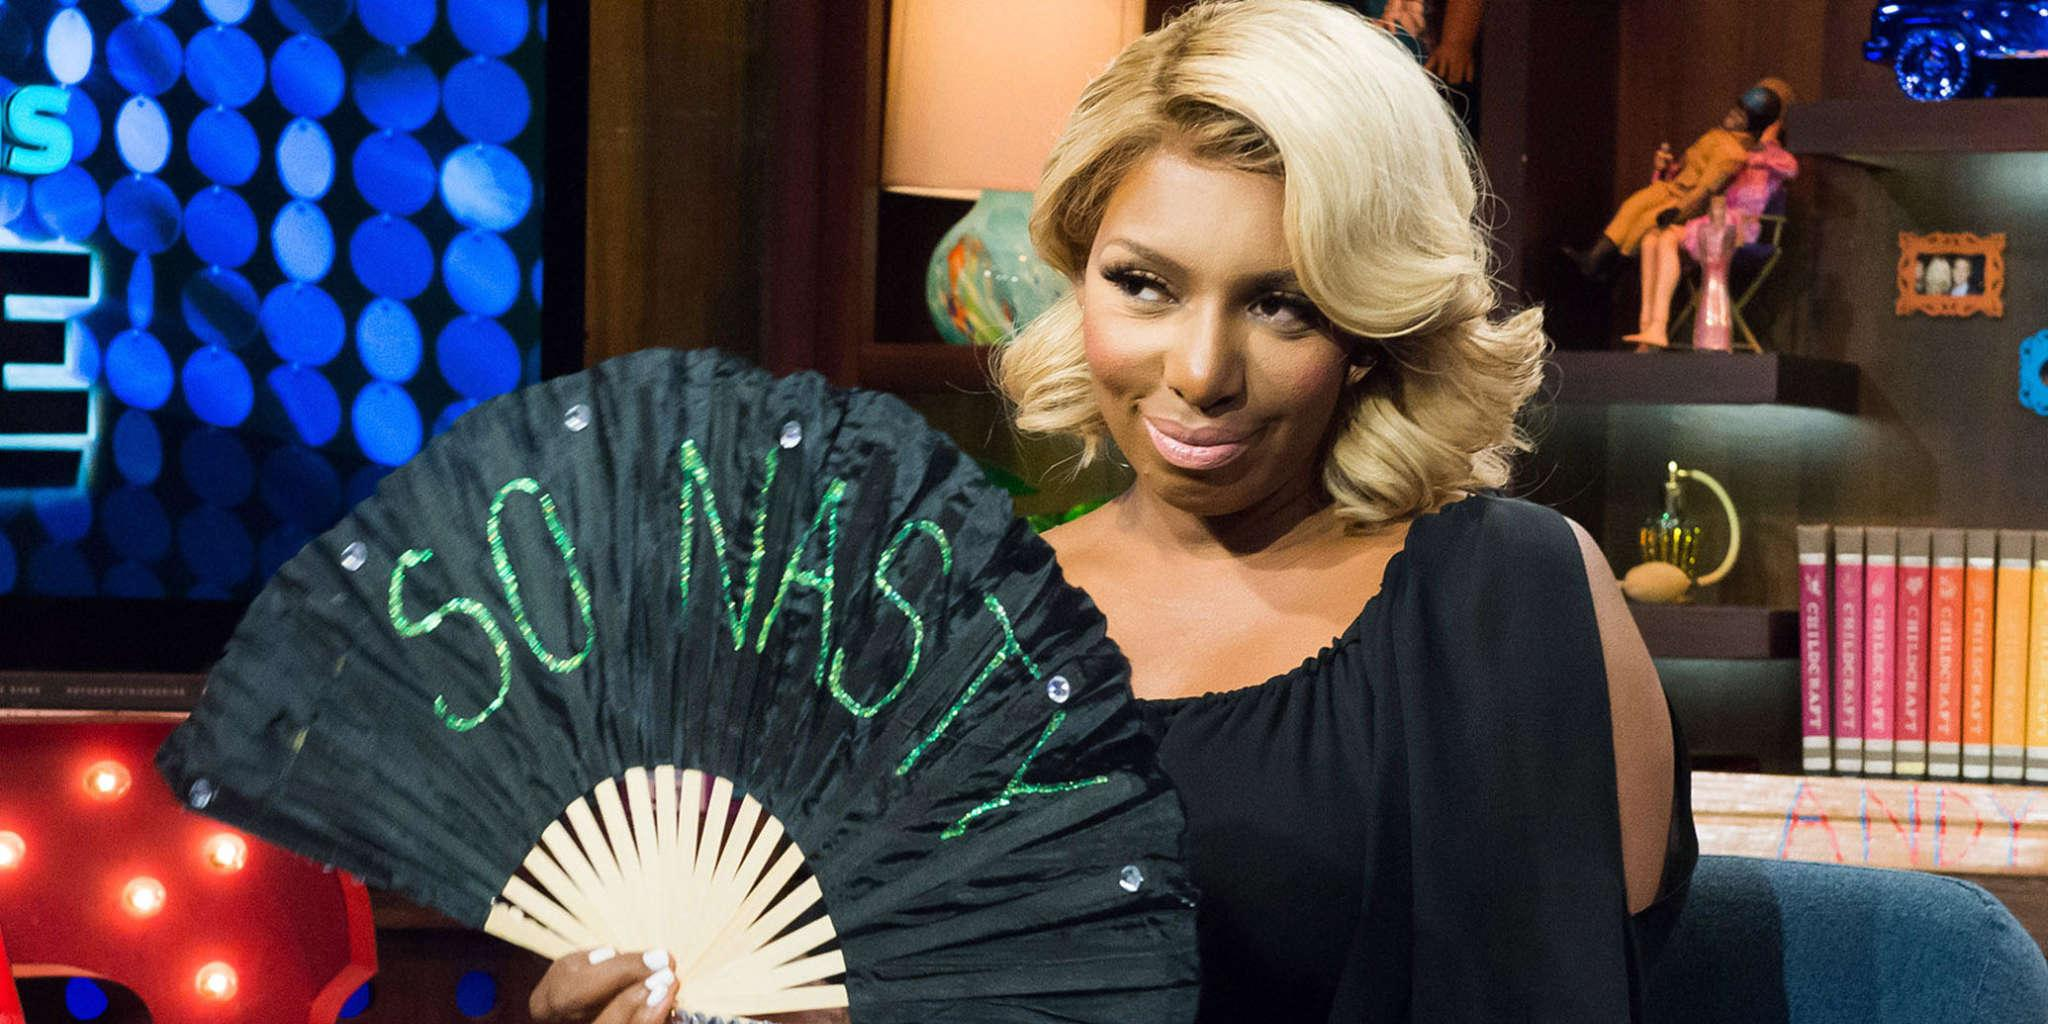 NeNe Leakes' First Day Of Her 'Ladies Of Success' Event Was Amazing - See Her Photos